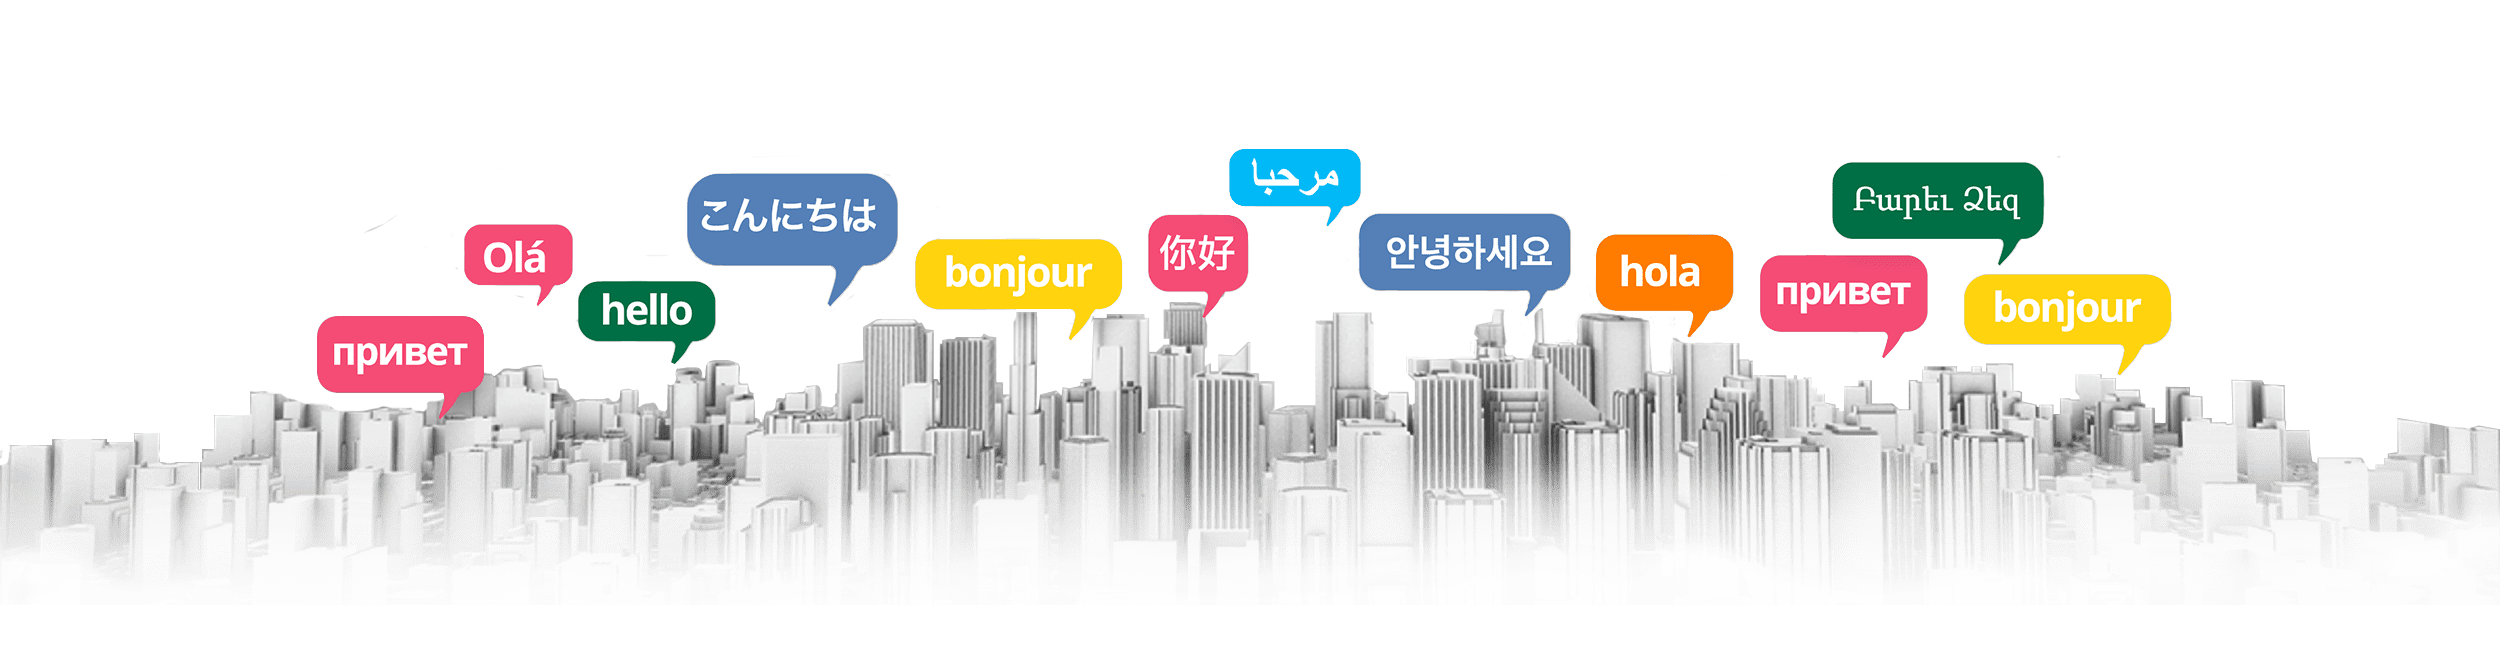 city buildings with speech bubbles saying hello in different languages